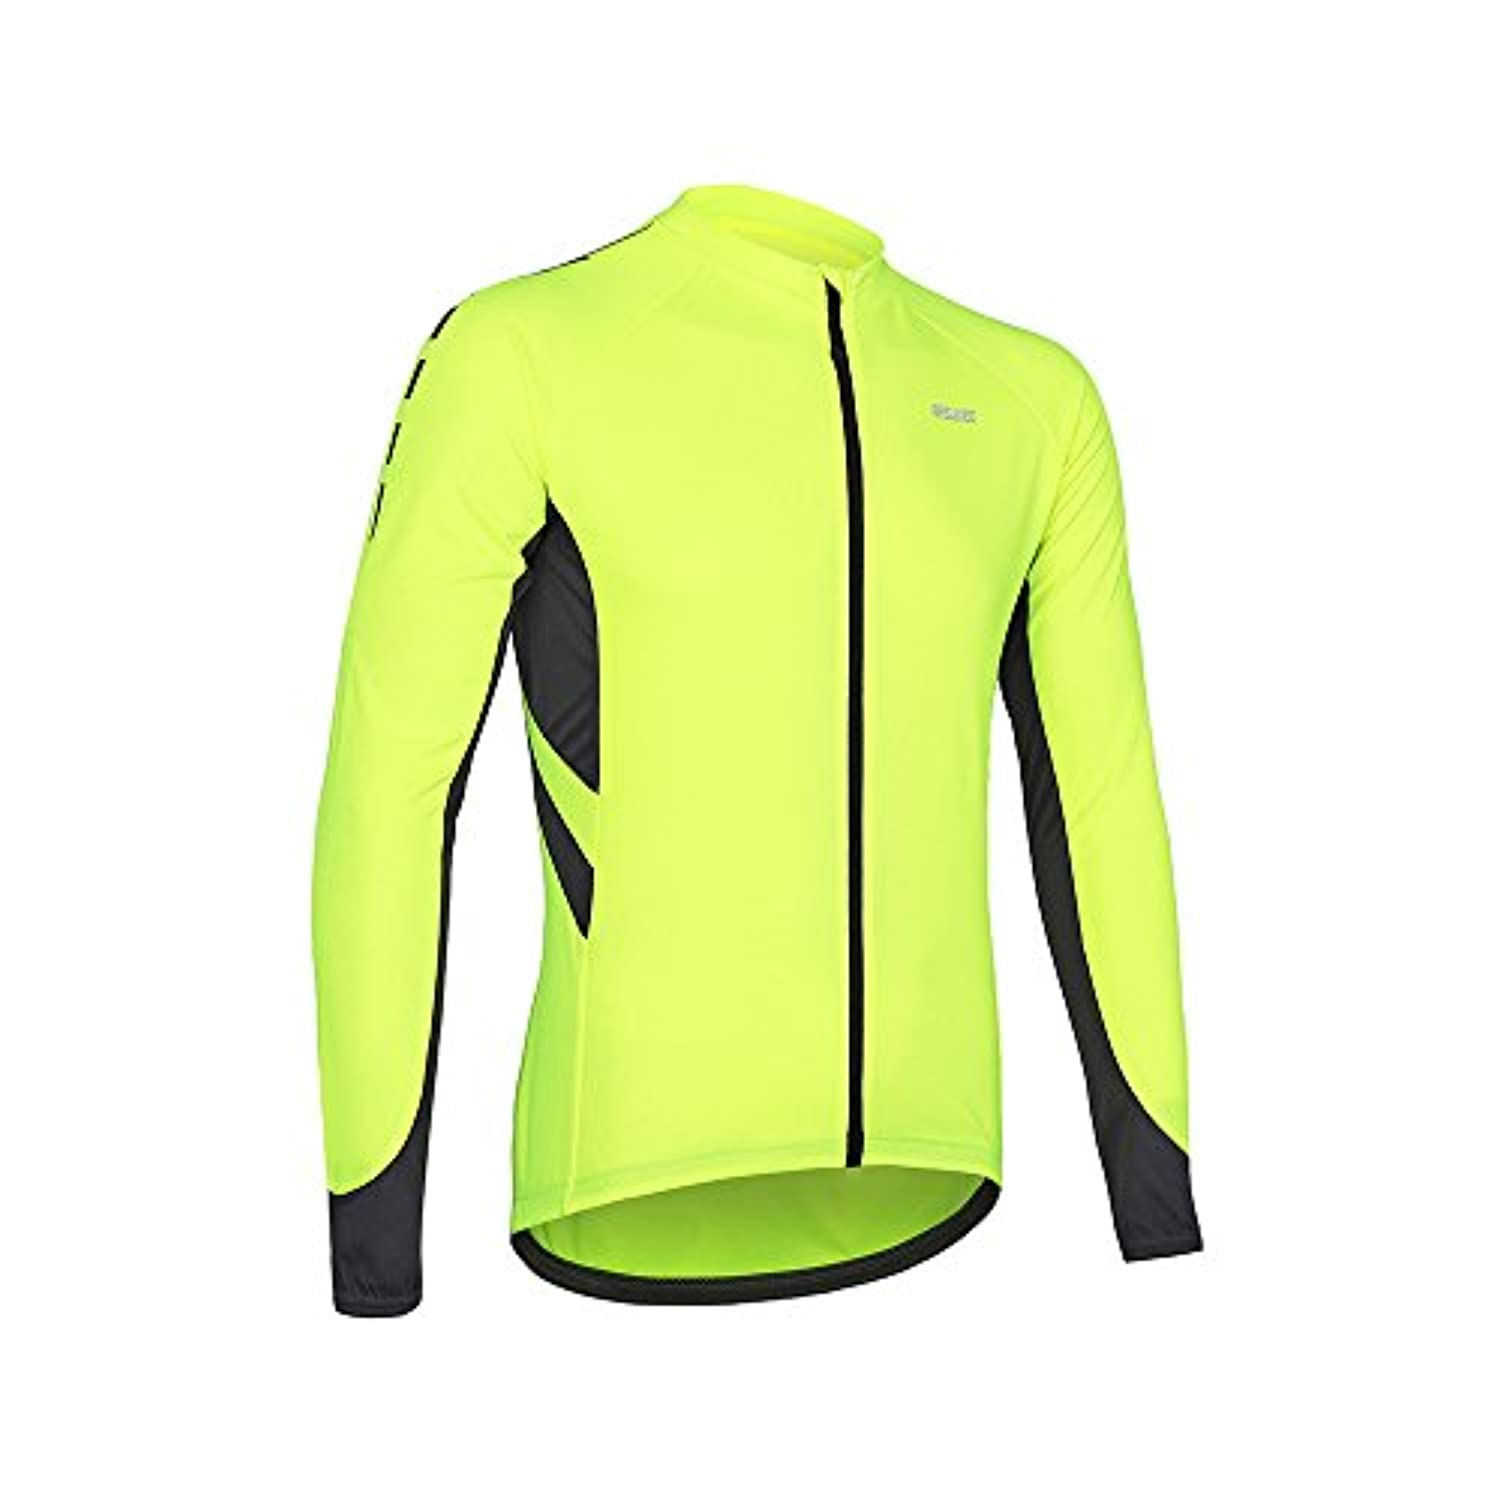 ARSUXEO Men's Full Zipper Long Sleeves Cycling Jersey Bicycle MTB Bike Shirt